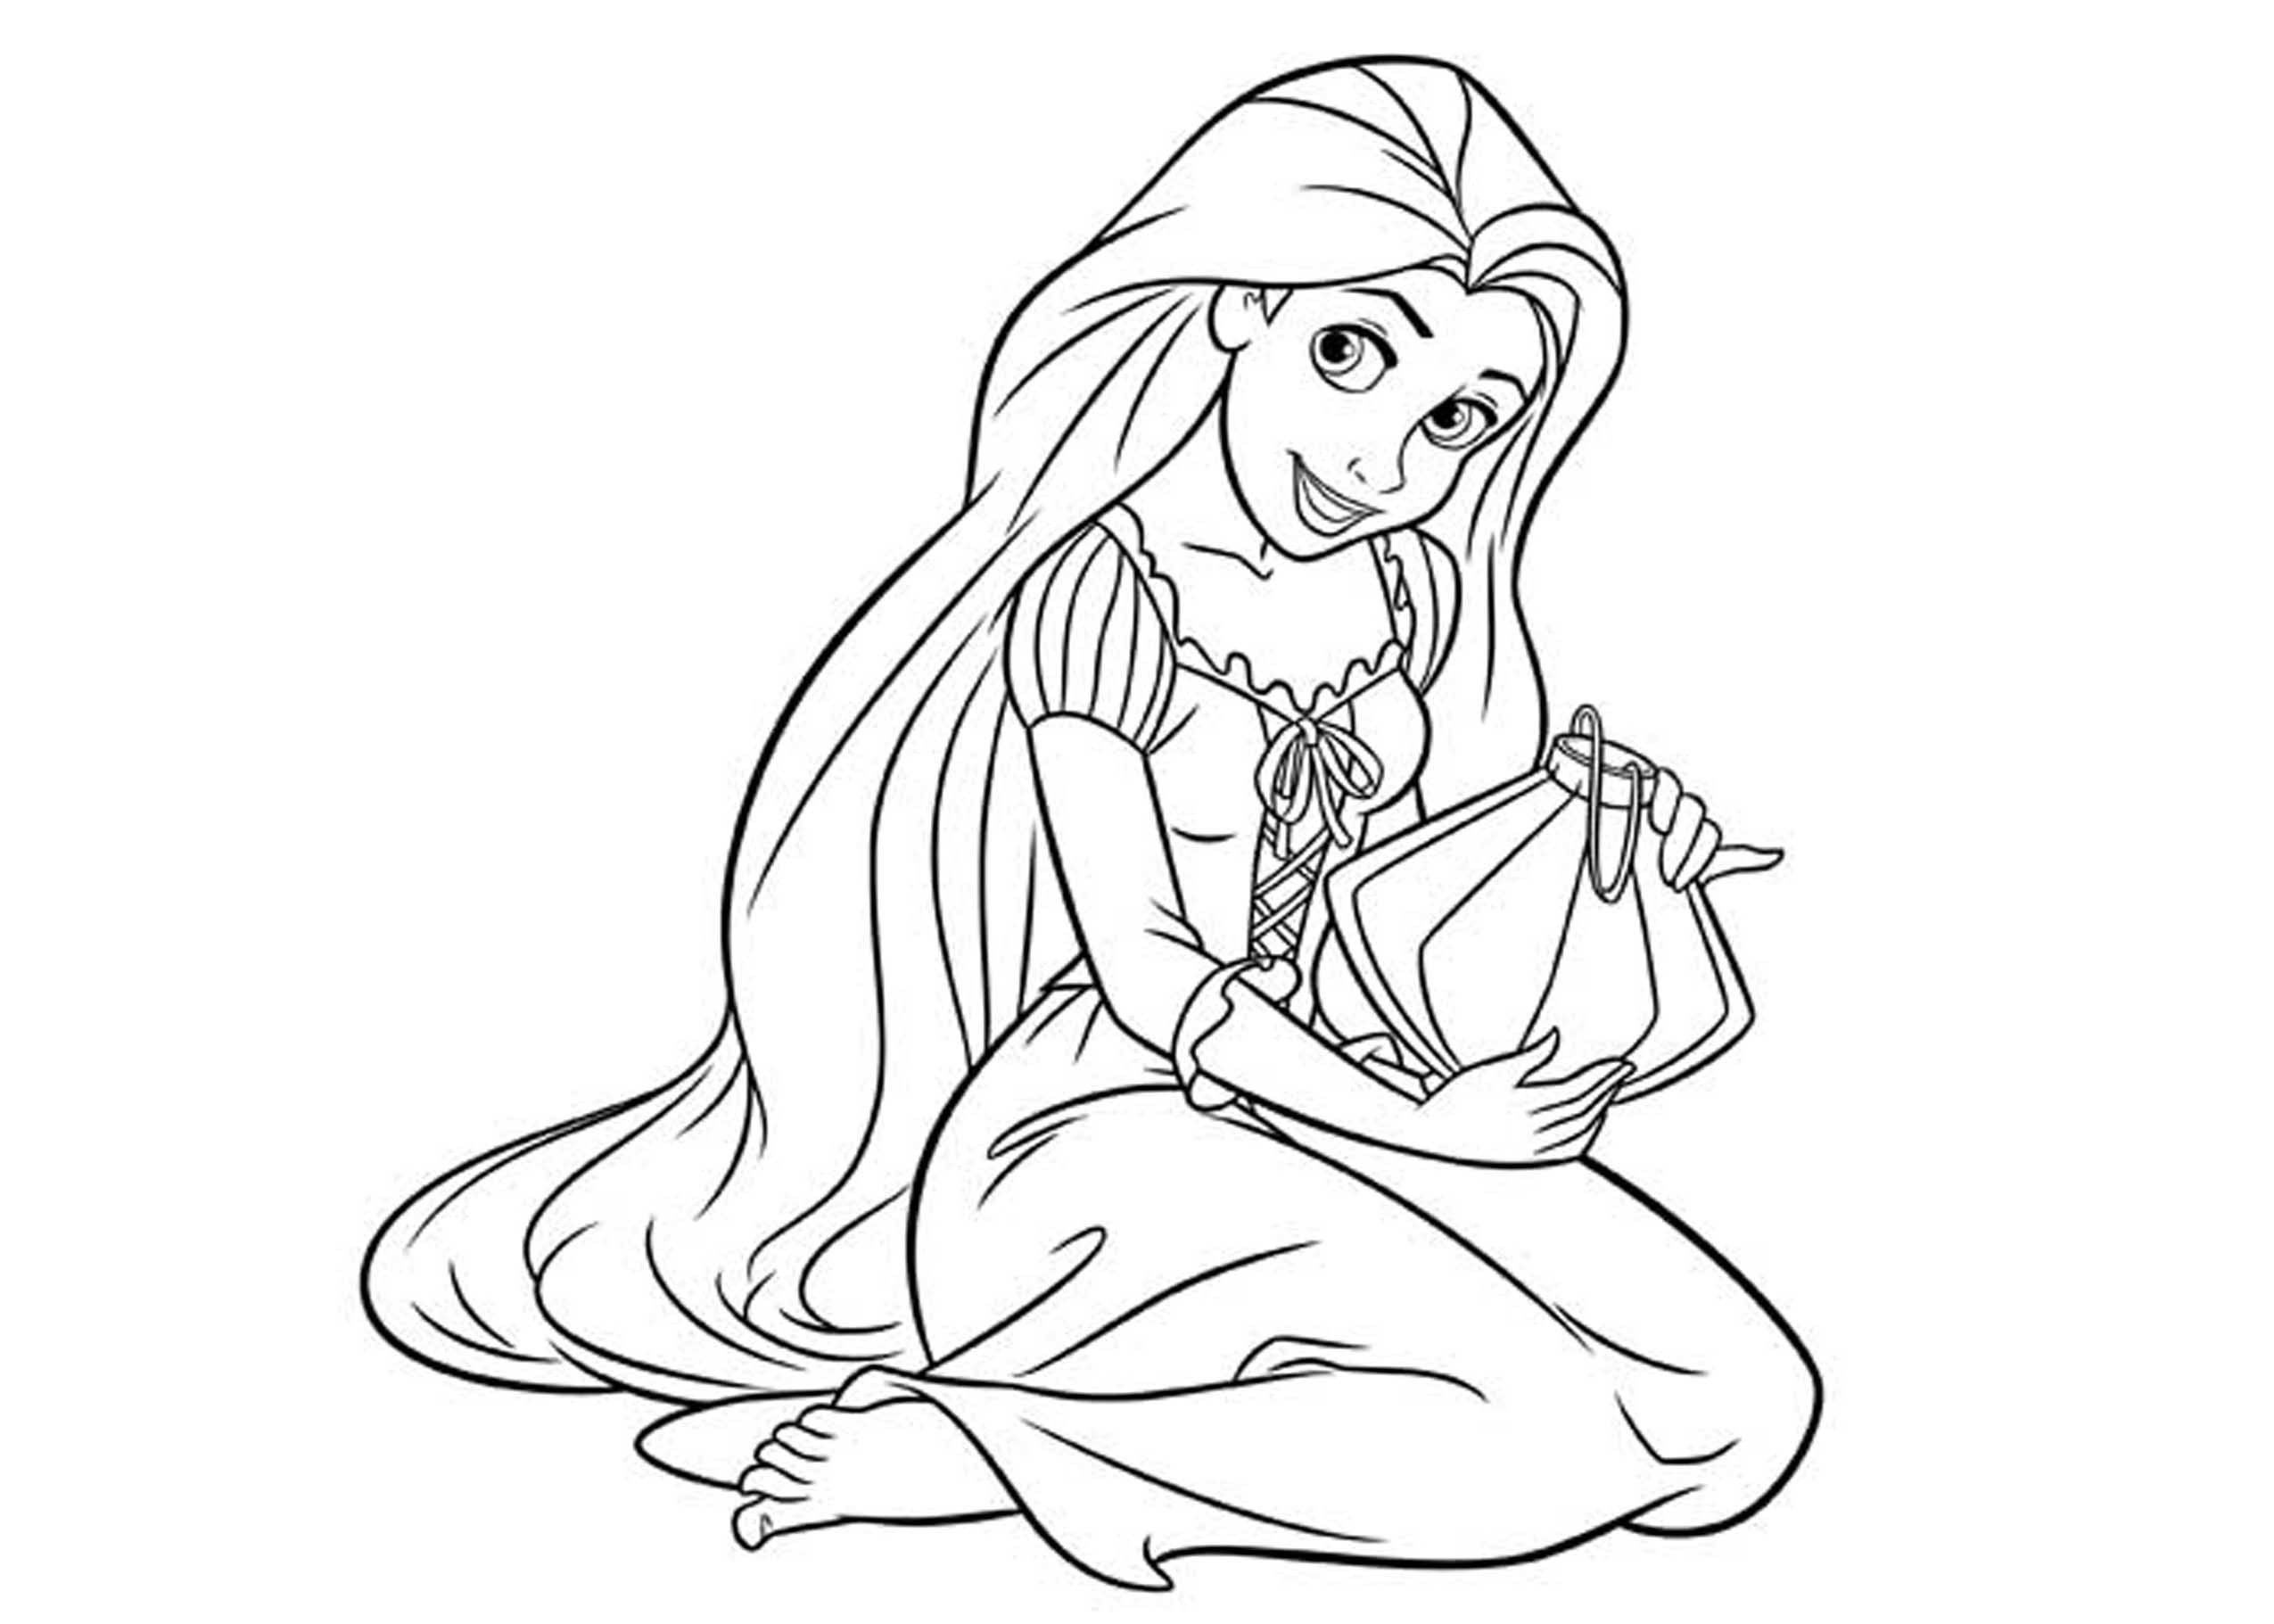 - Princess Coloring Page To Print Disney Princess Coloring Pages